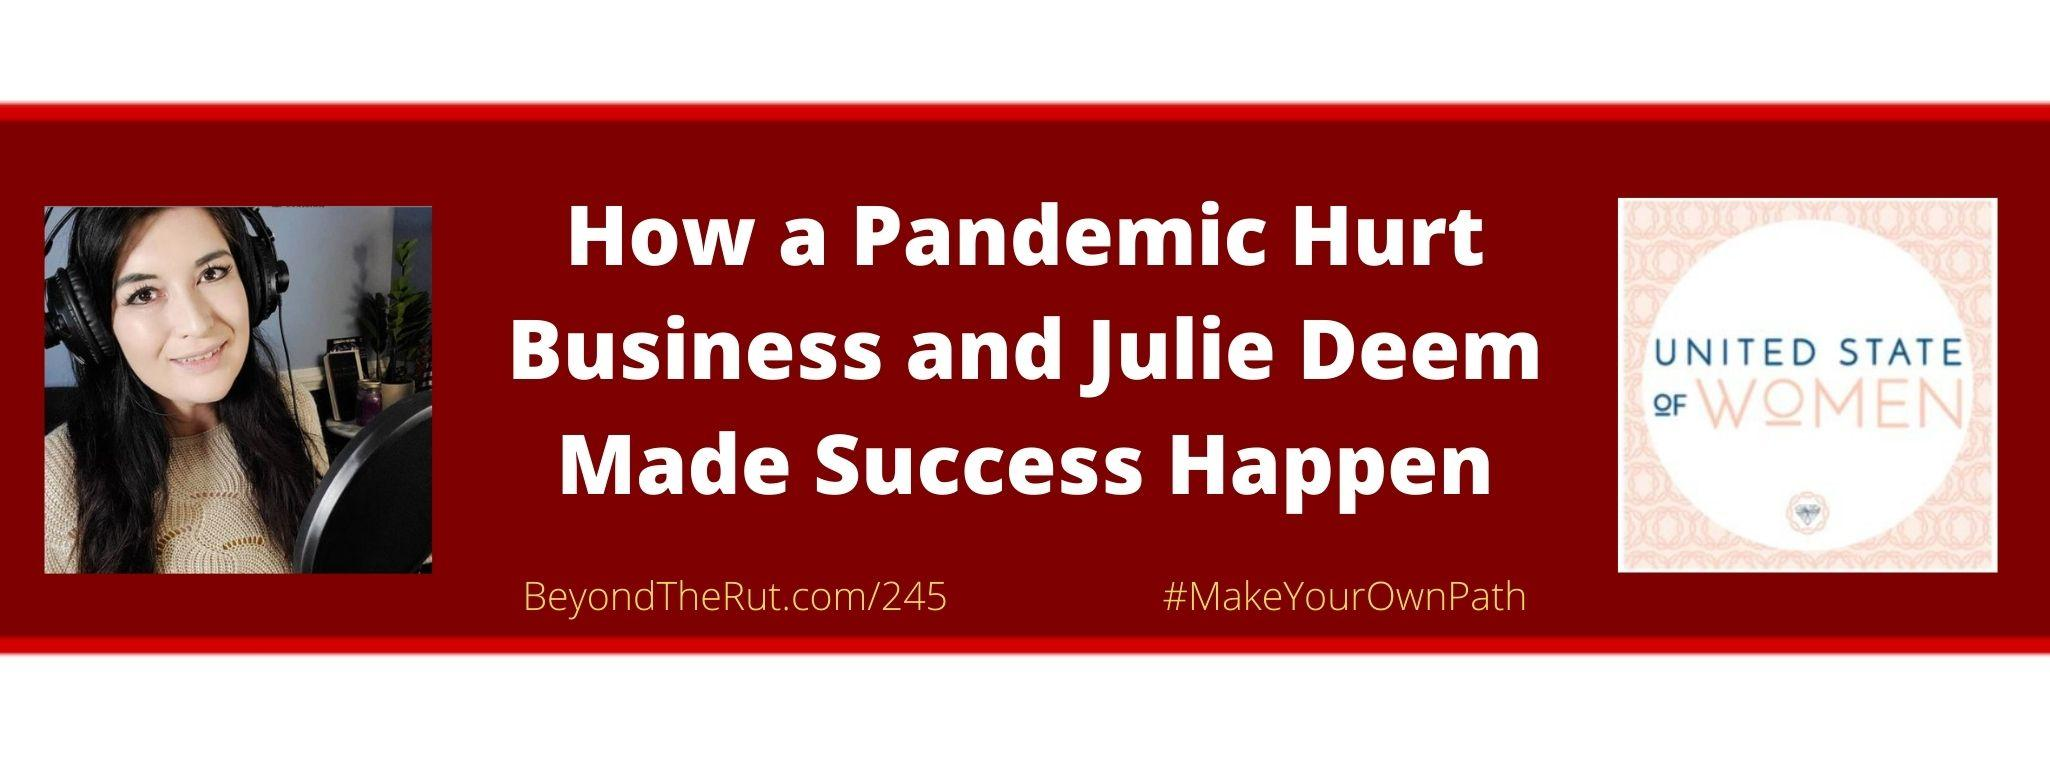 pandemic hurt business